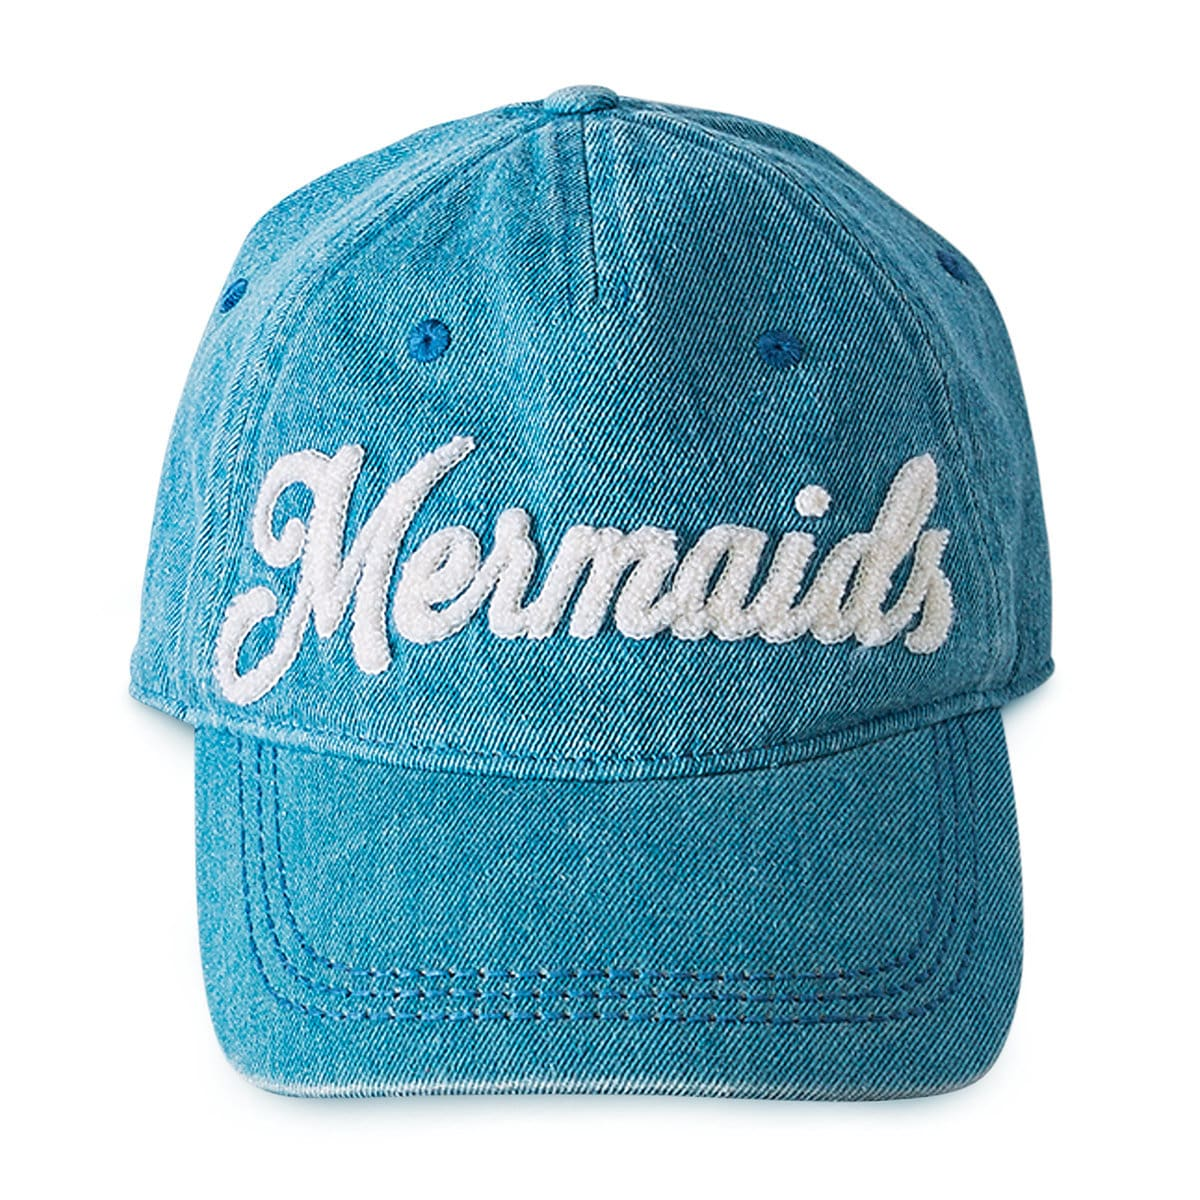 625ed1bed30 Product Image of The Little Mermaid Baseball Cap for Girls by ROXY Girl   1